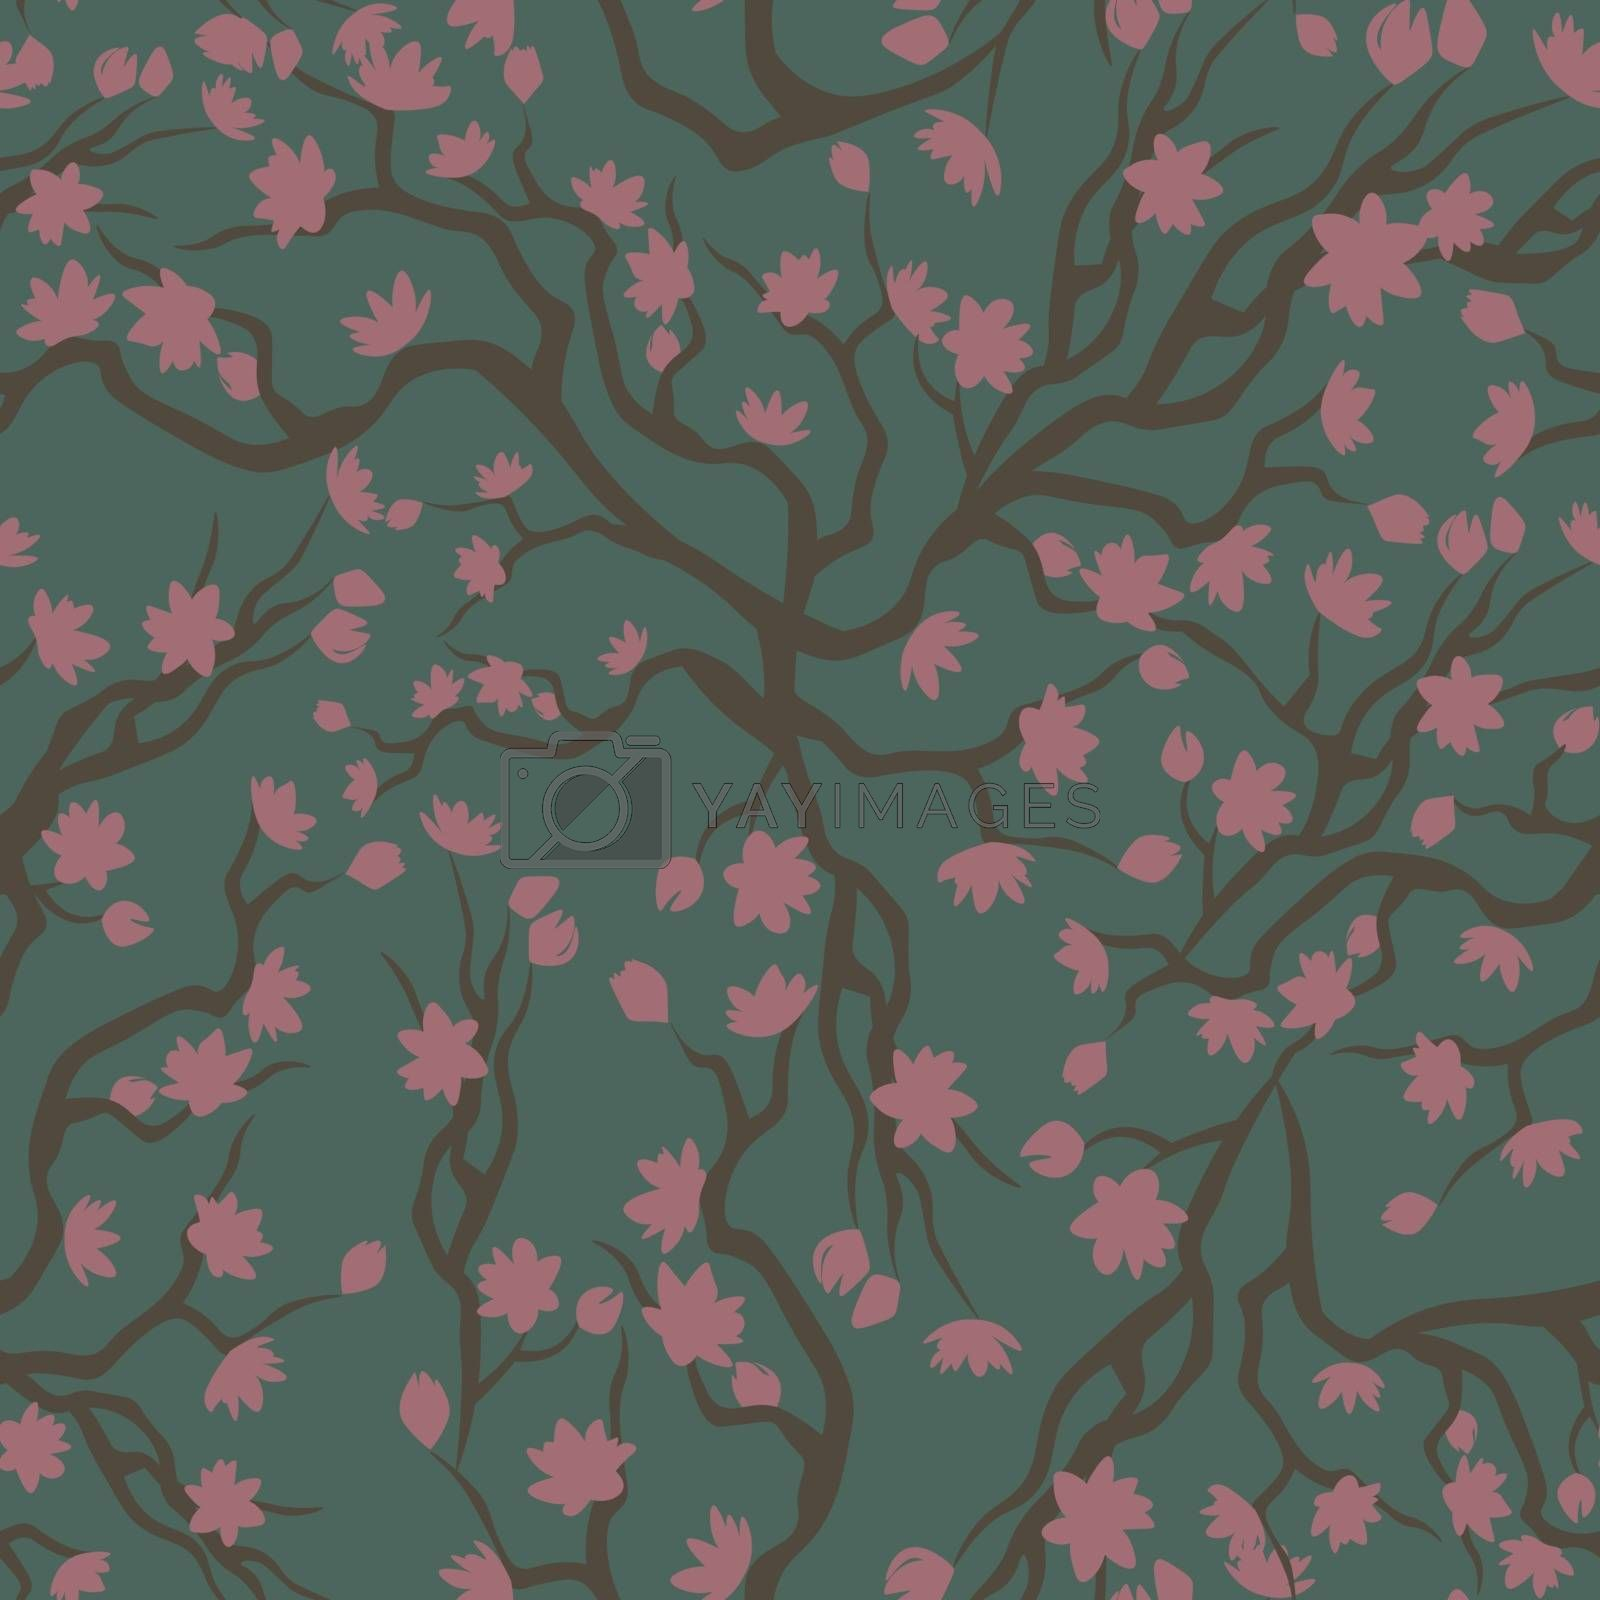 spring vintage seamless pattern in halftones with pink flowers on the branches on green background